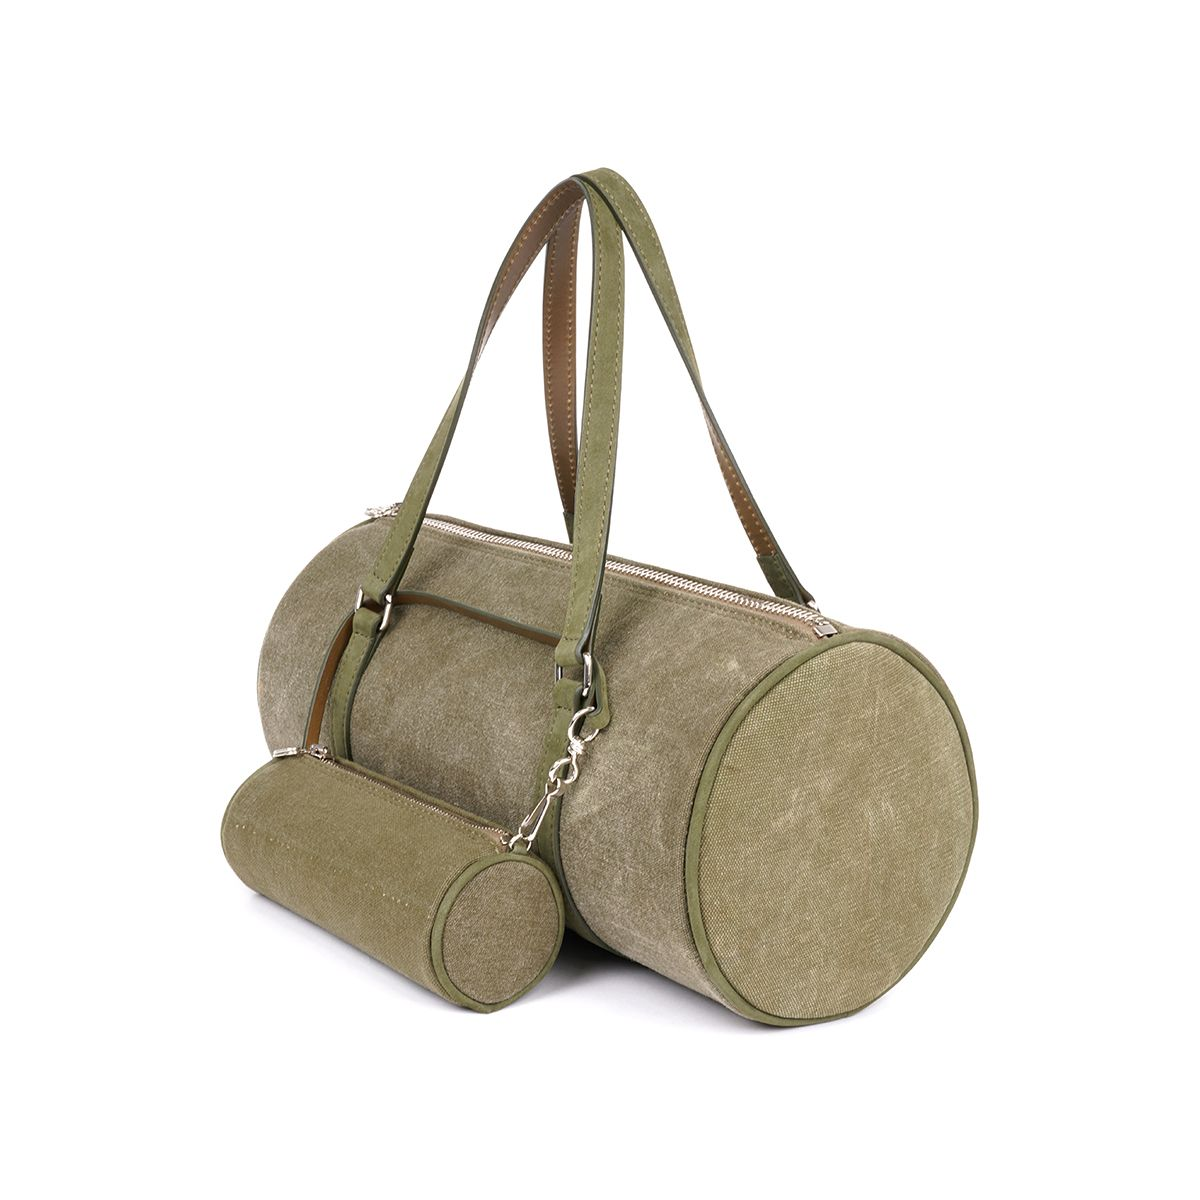 READYMADE PAPILLON BAG / KHAKI